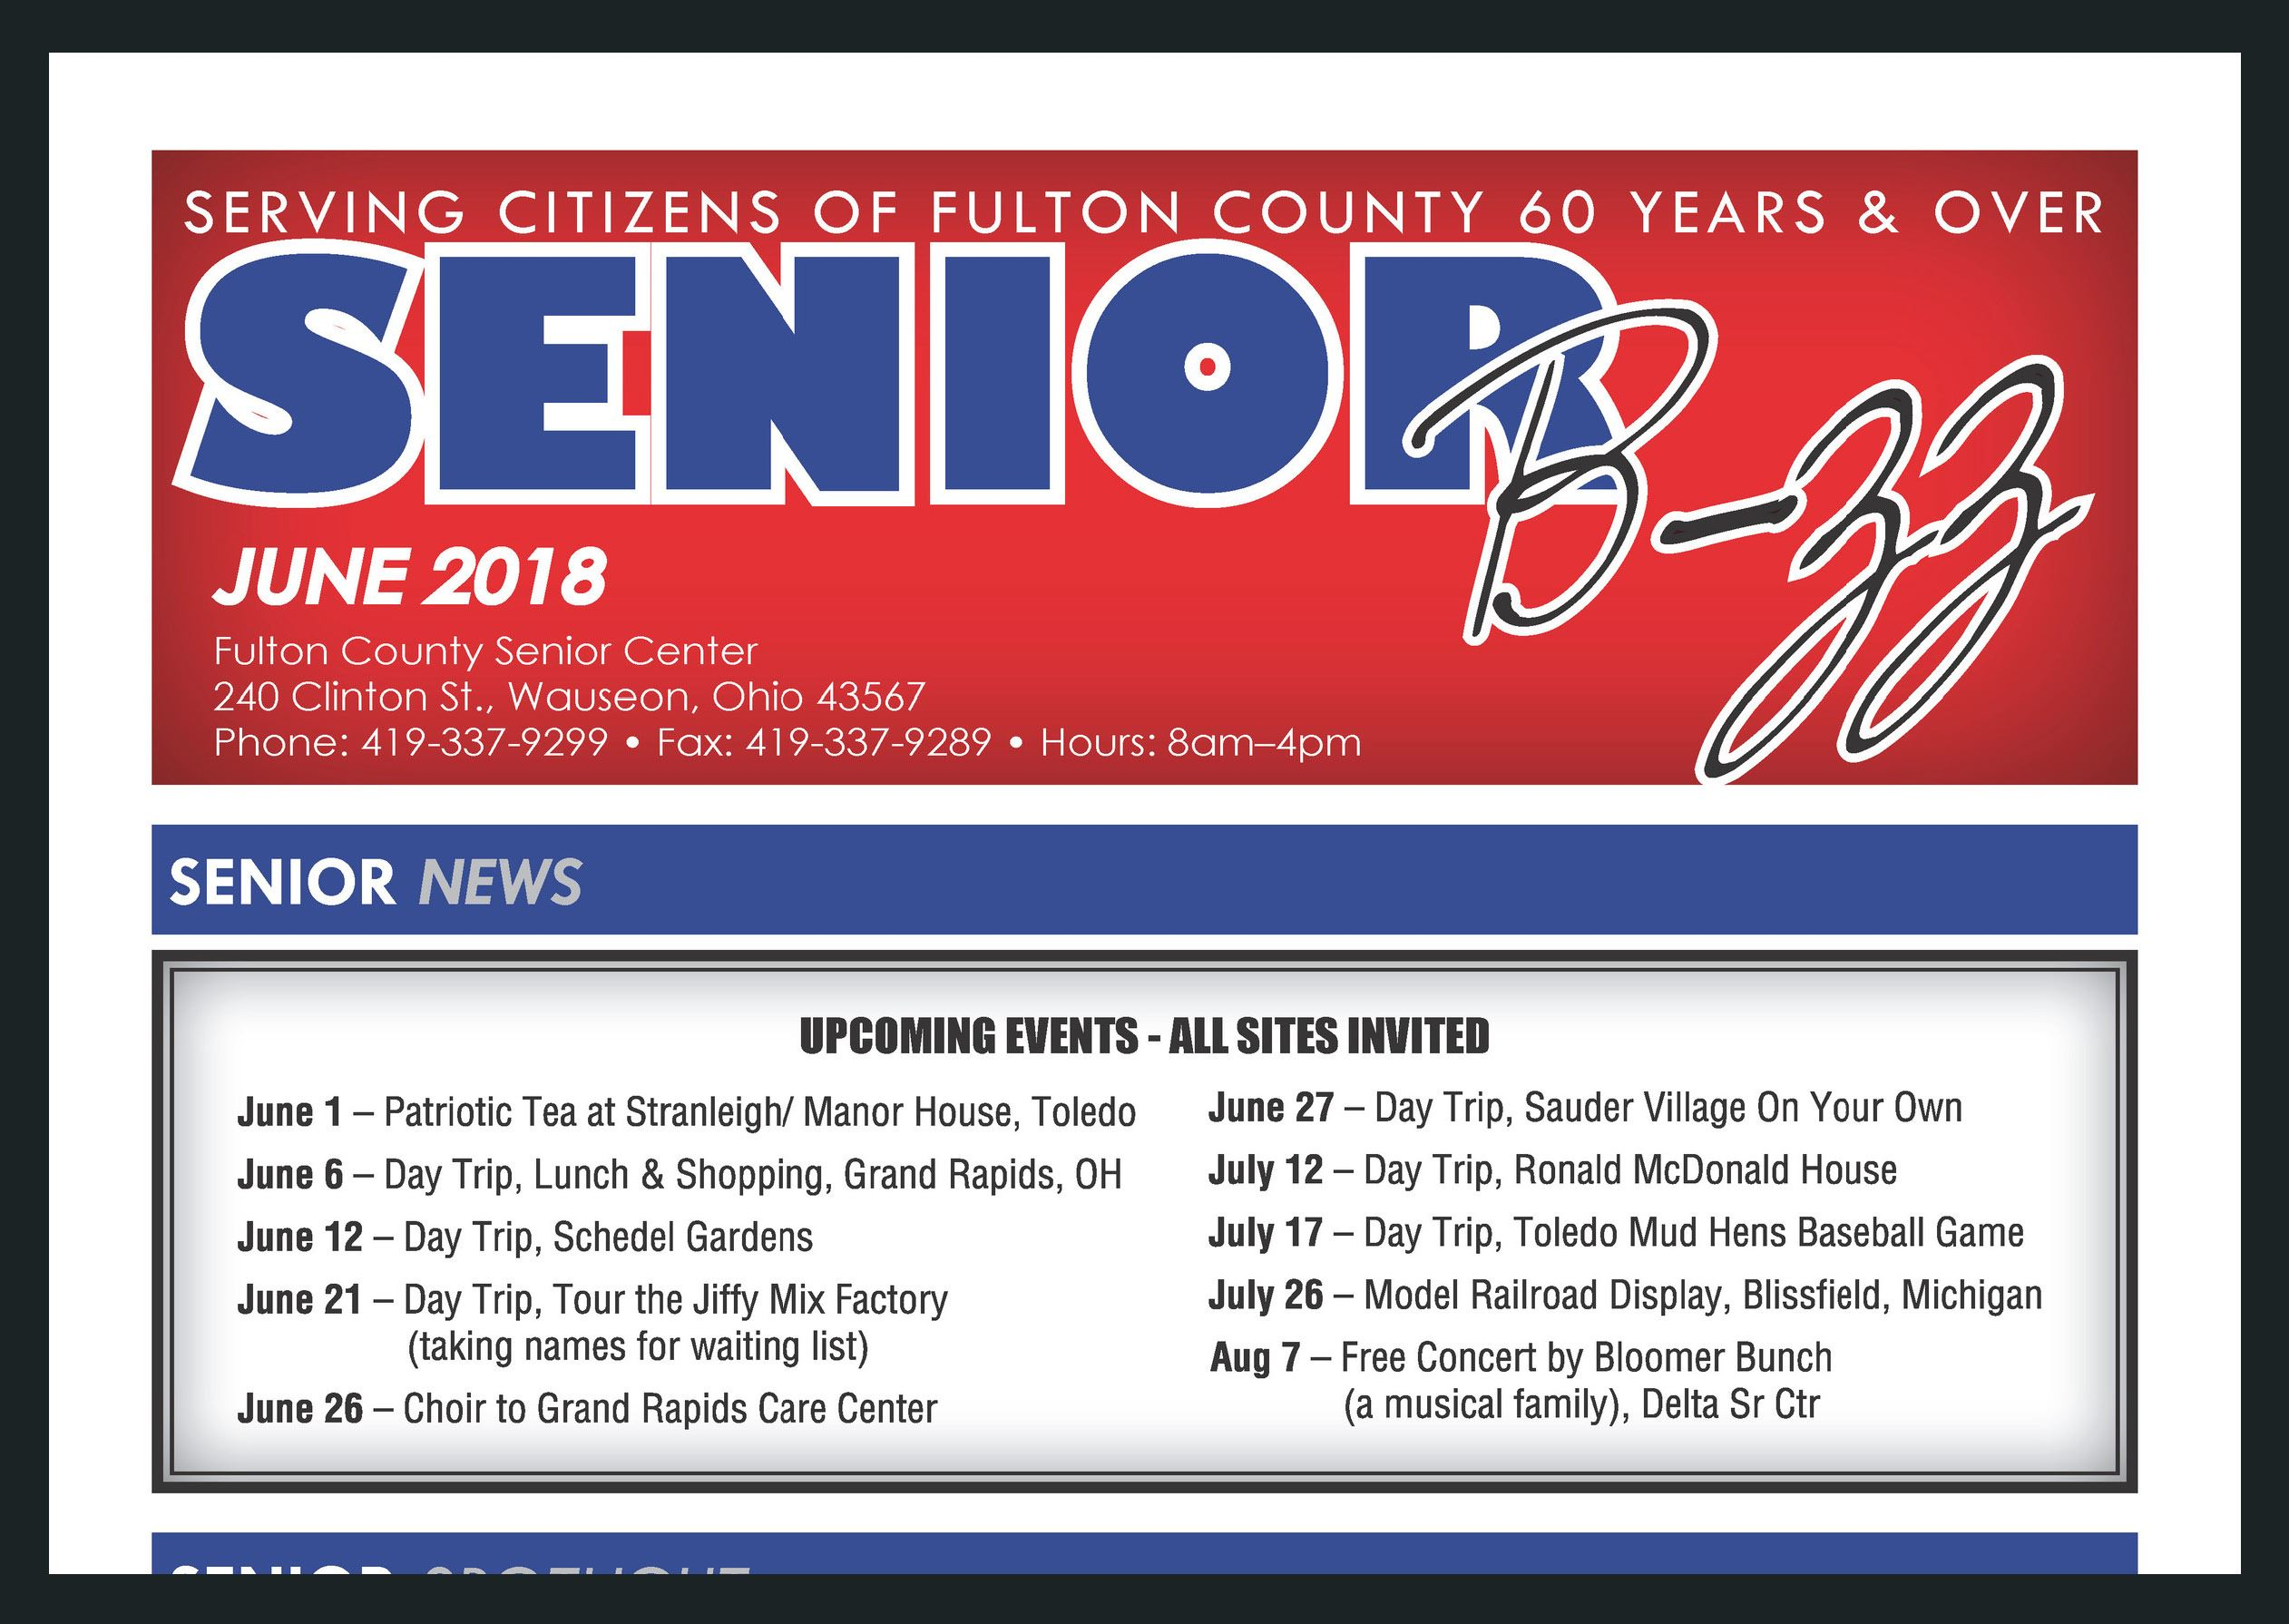 Senior B-zz June 2018 Image